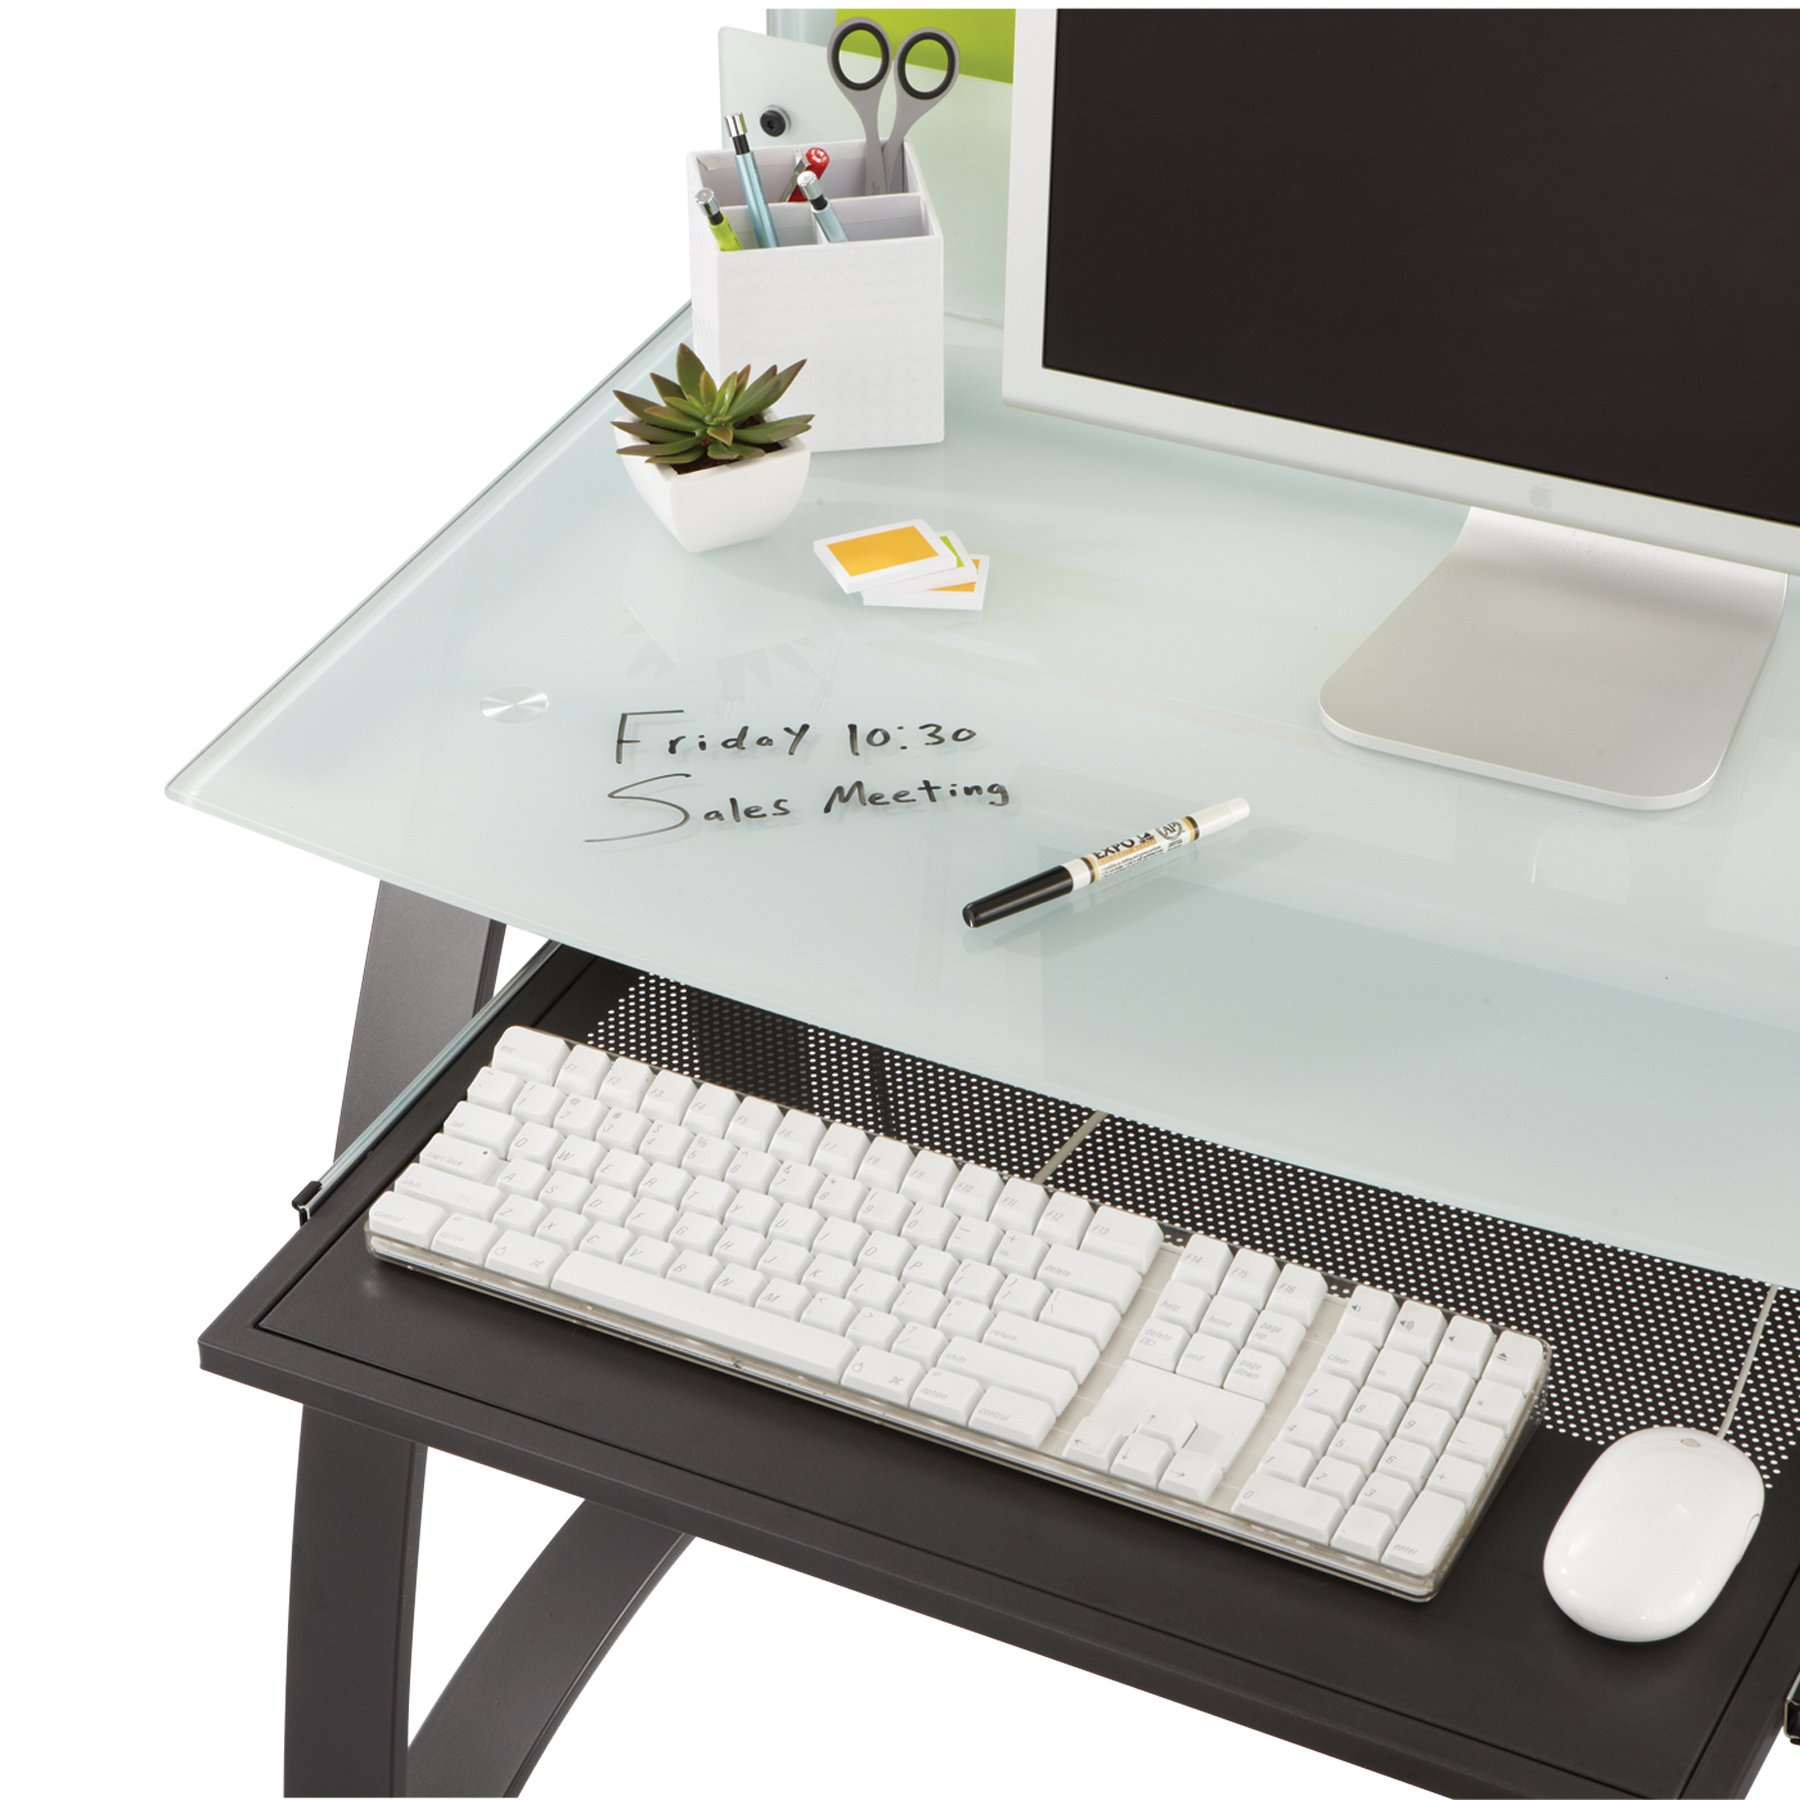 Safco Products 1940BL Xpressions Keyboard Tray for use with Workstations 1936TG & 1938TG (sold separately), Black